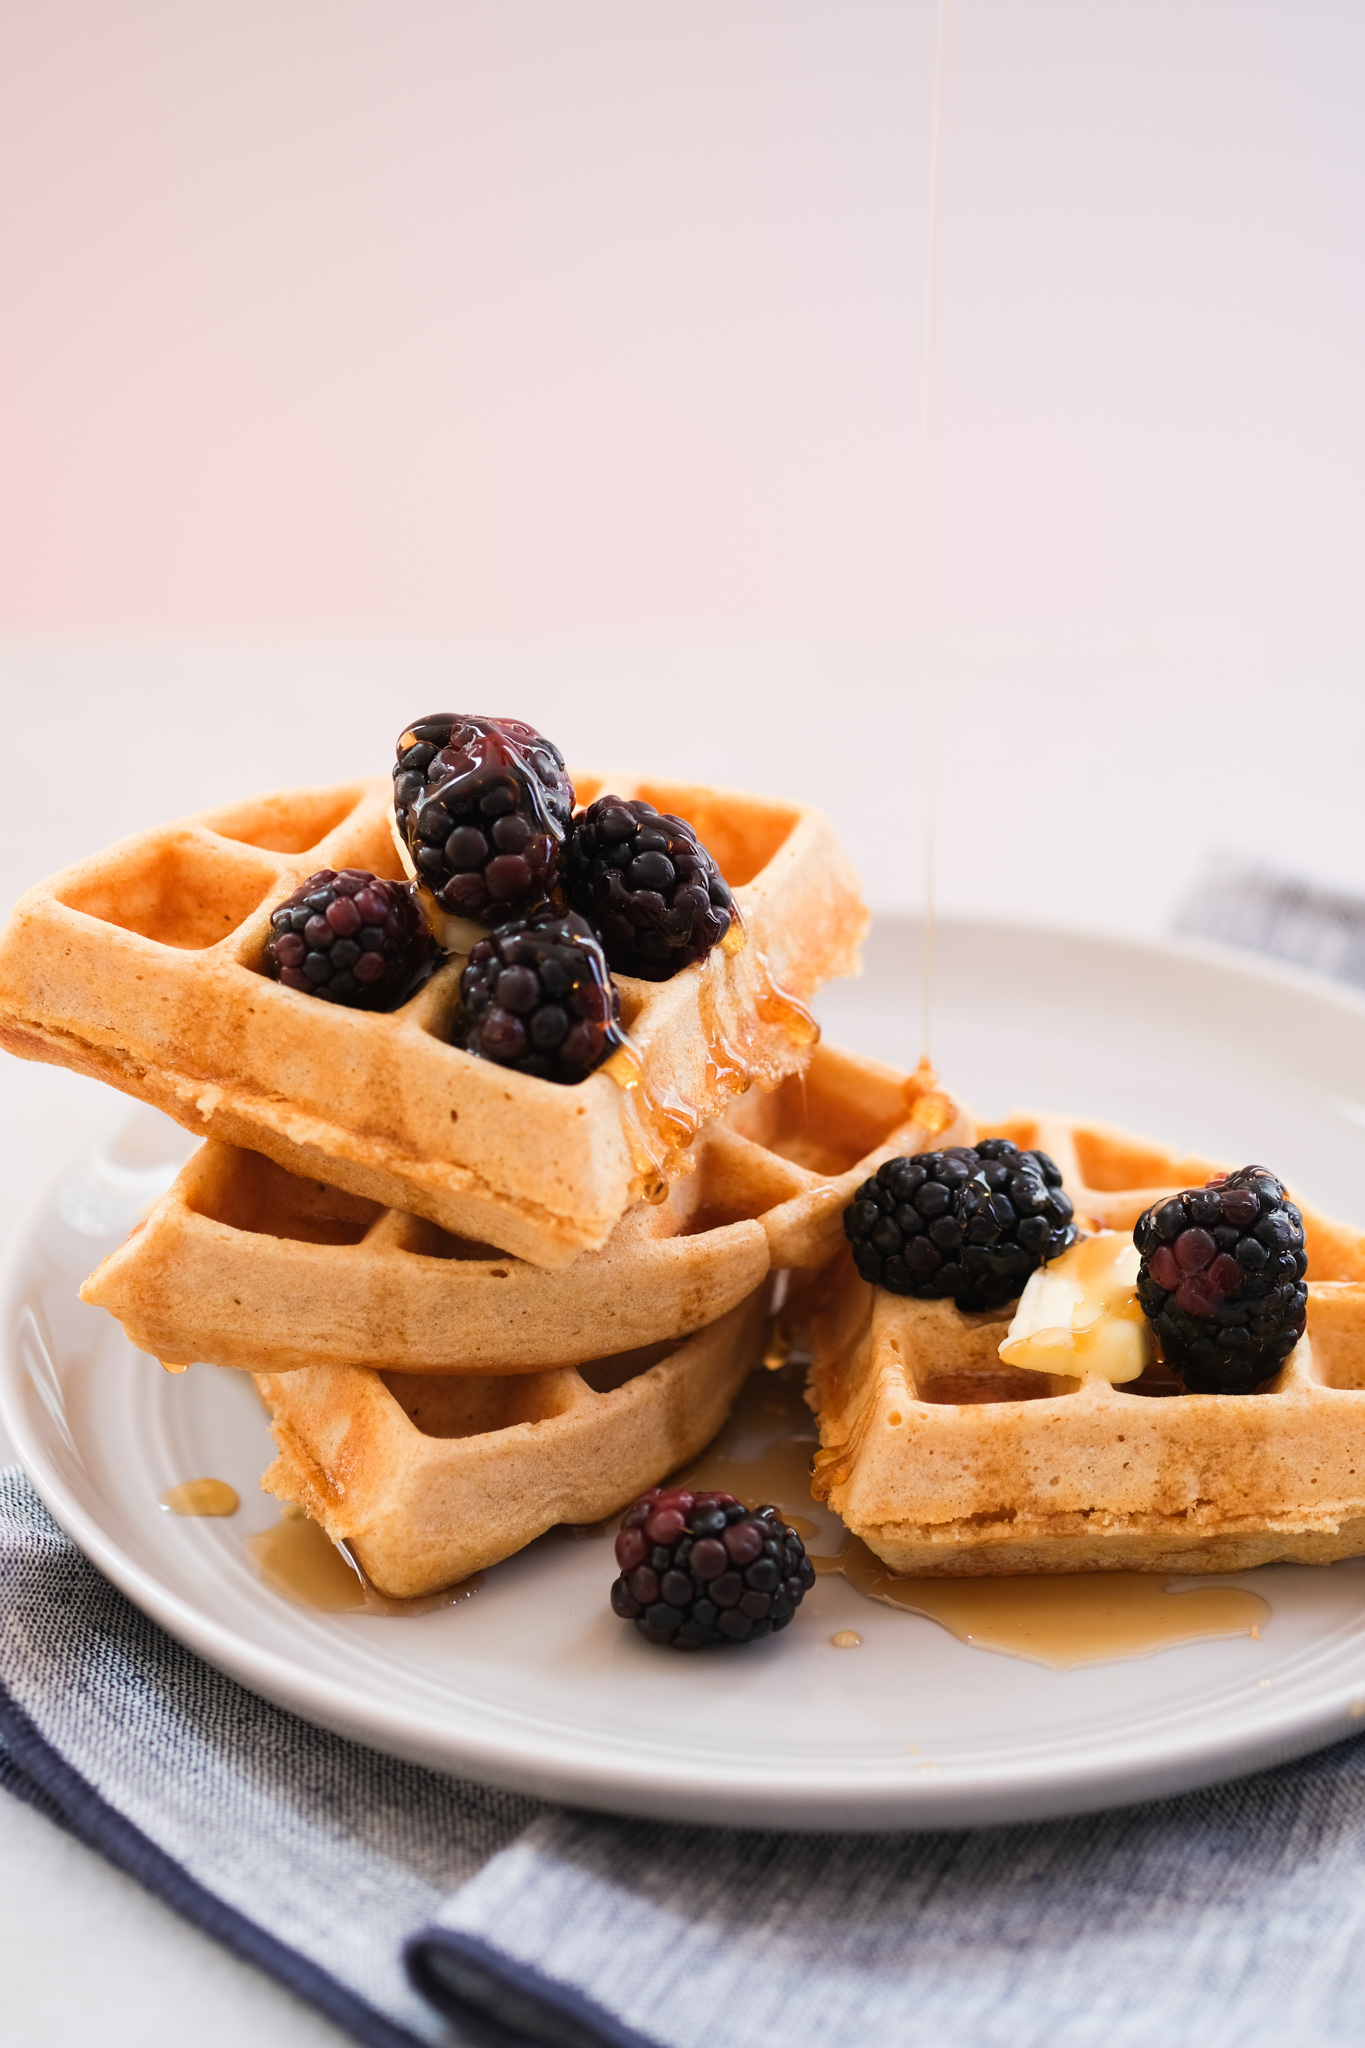 whole wheat waffles with blackberries and syrup drizzled on top